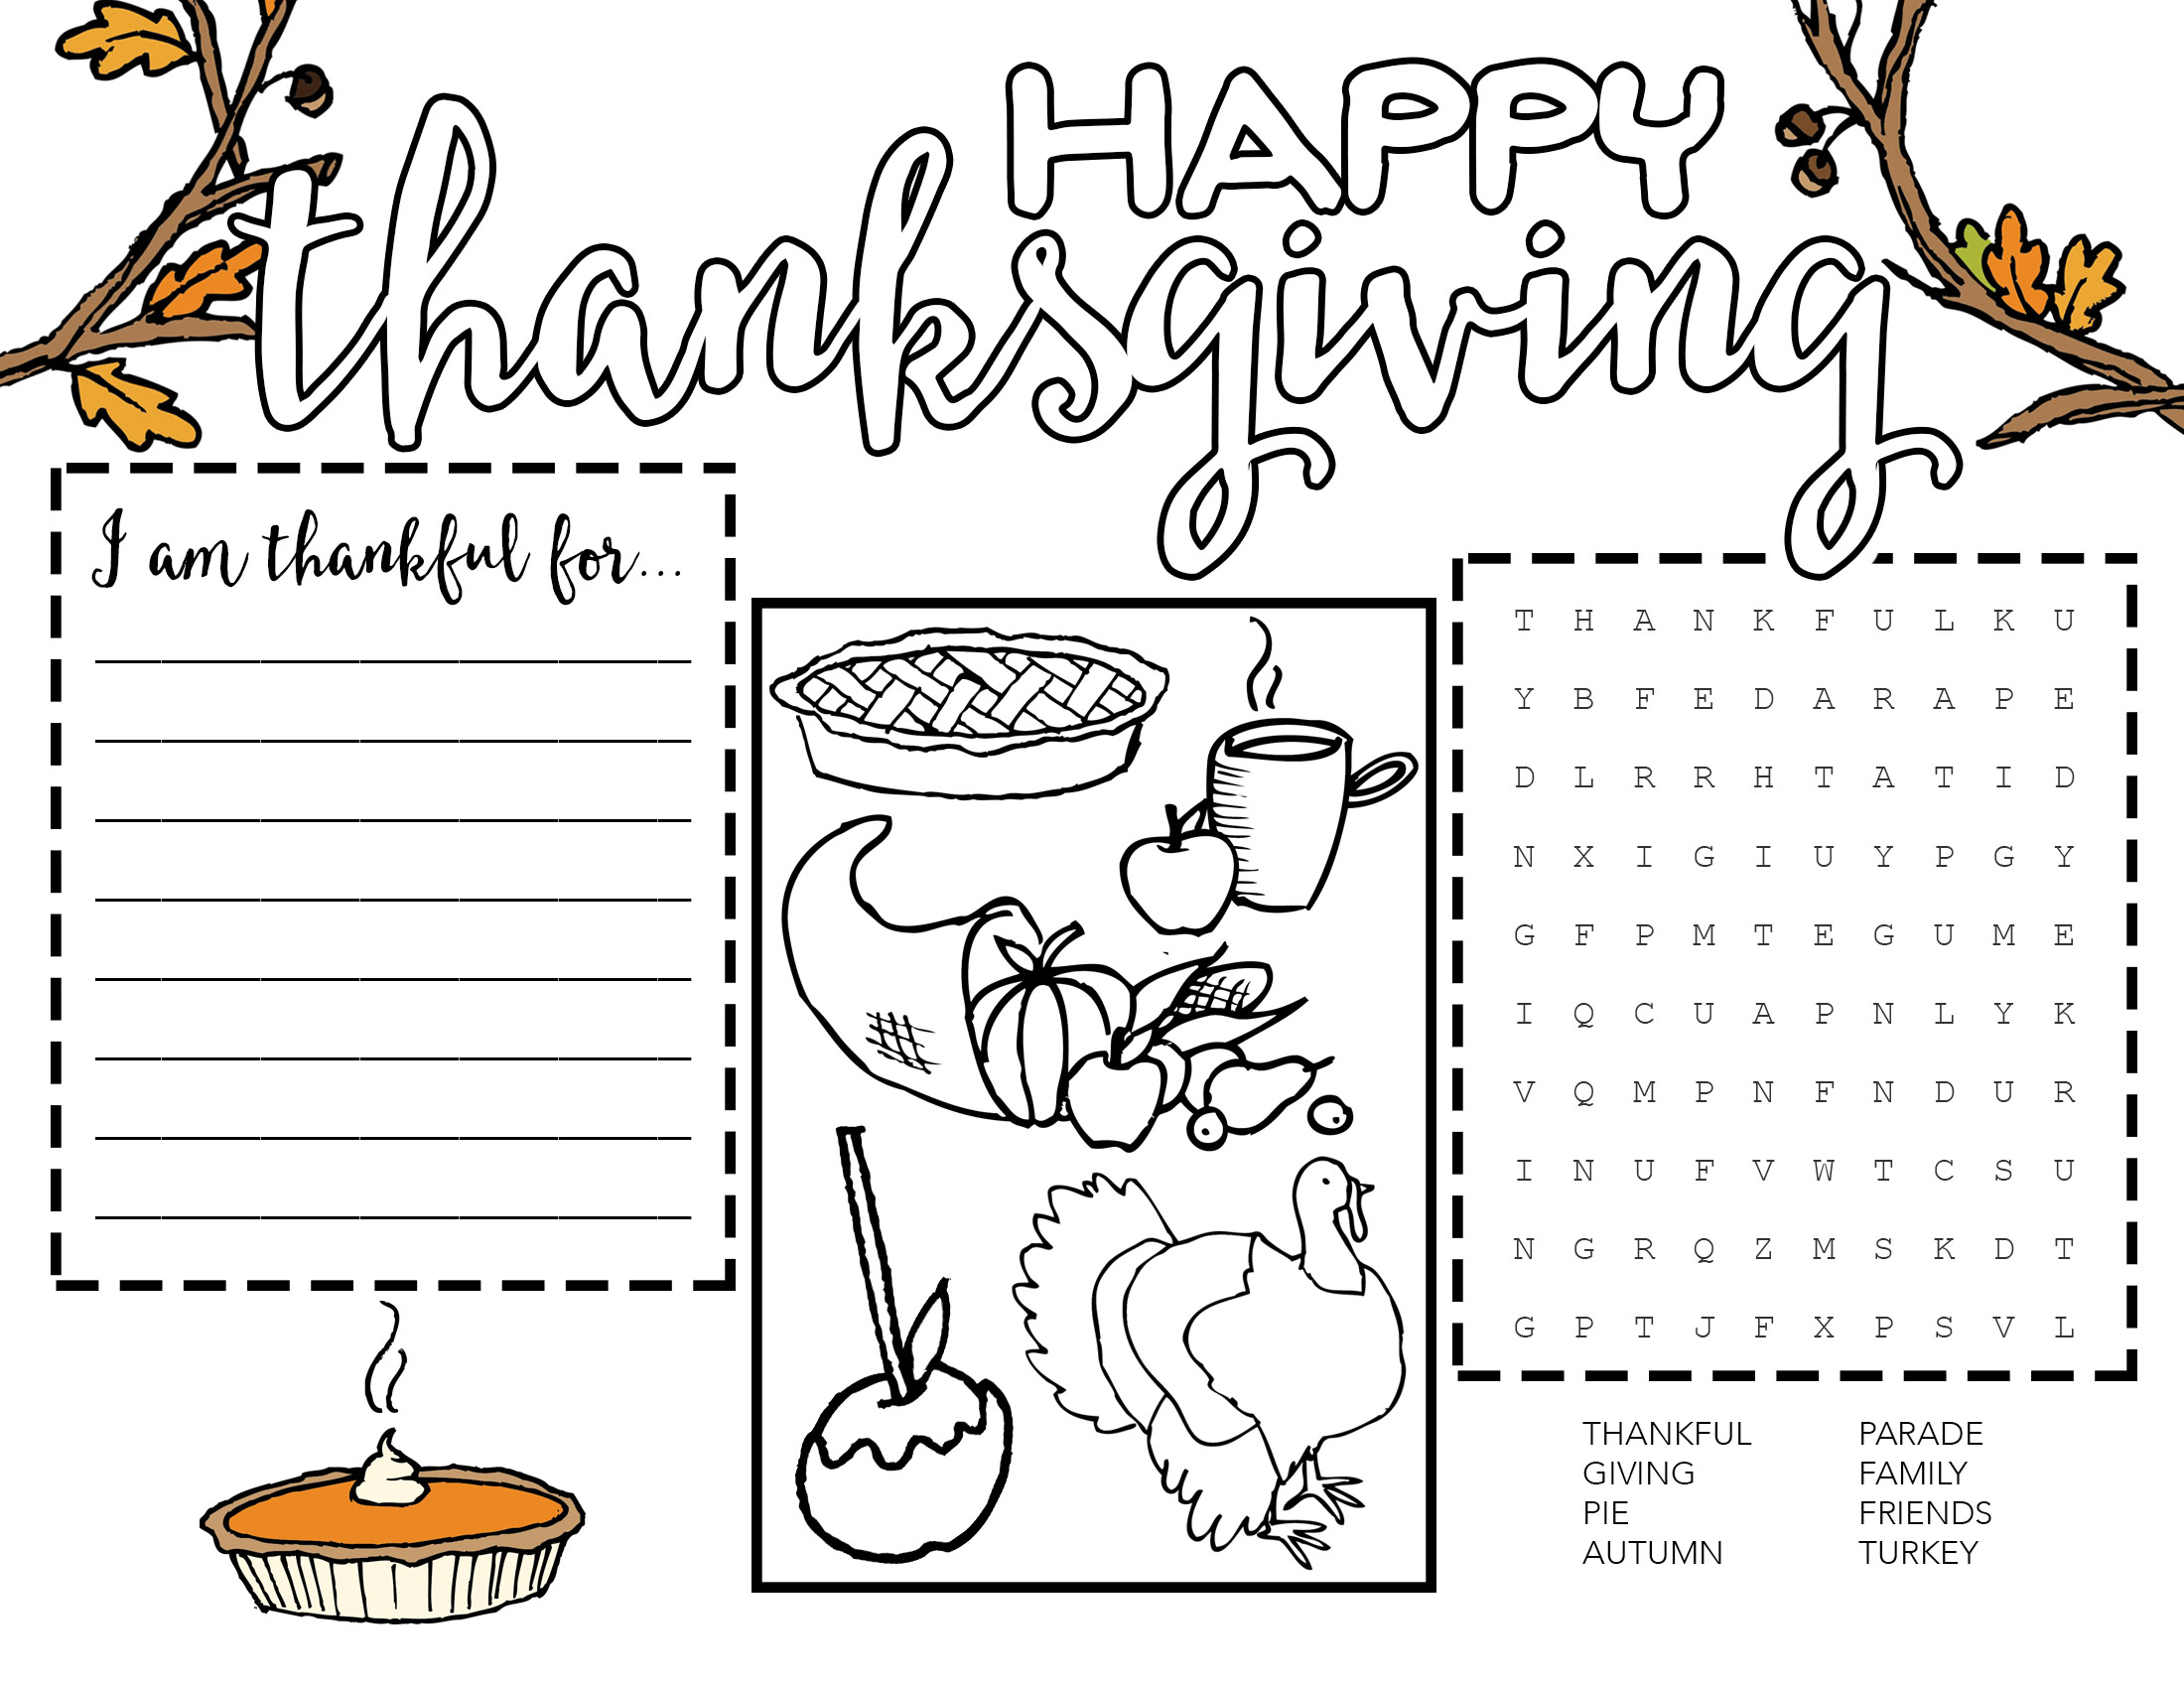 picture about Thankful Printable identified as Totally free Printable Thanksgiving Placemat - Our Handcrafted Everyday living